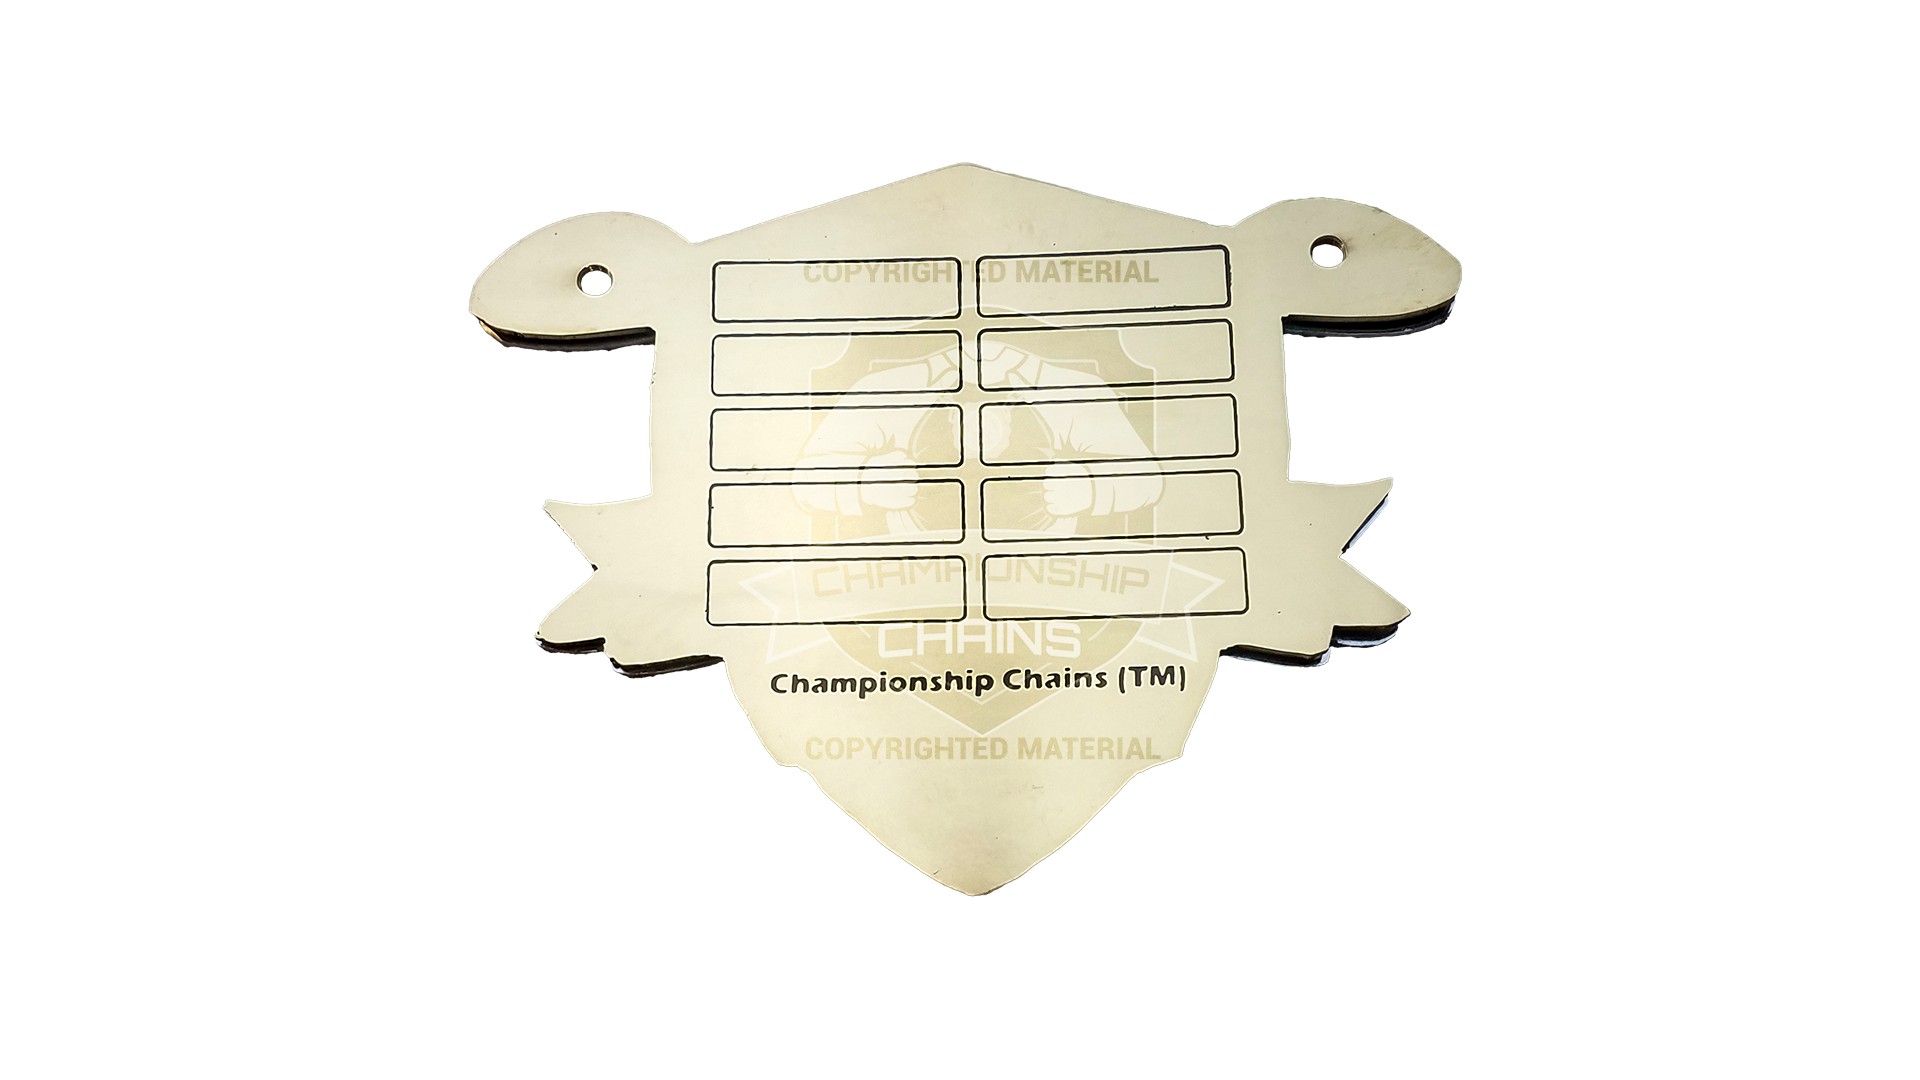 Long Drive customized championship chain image